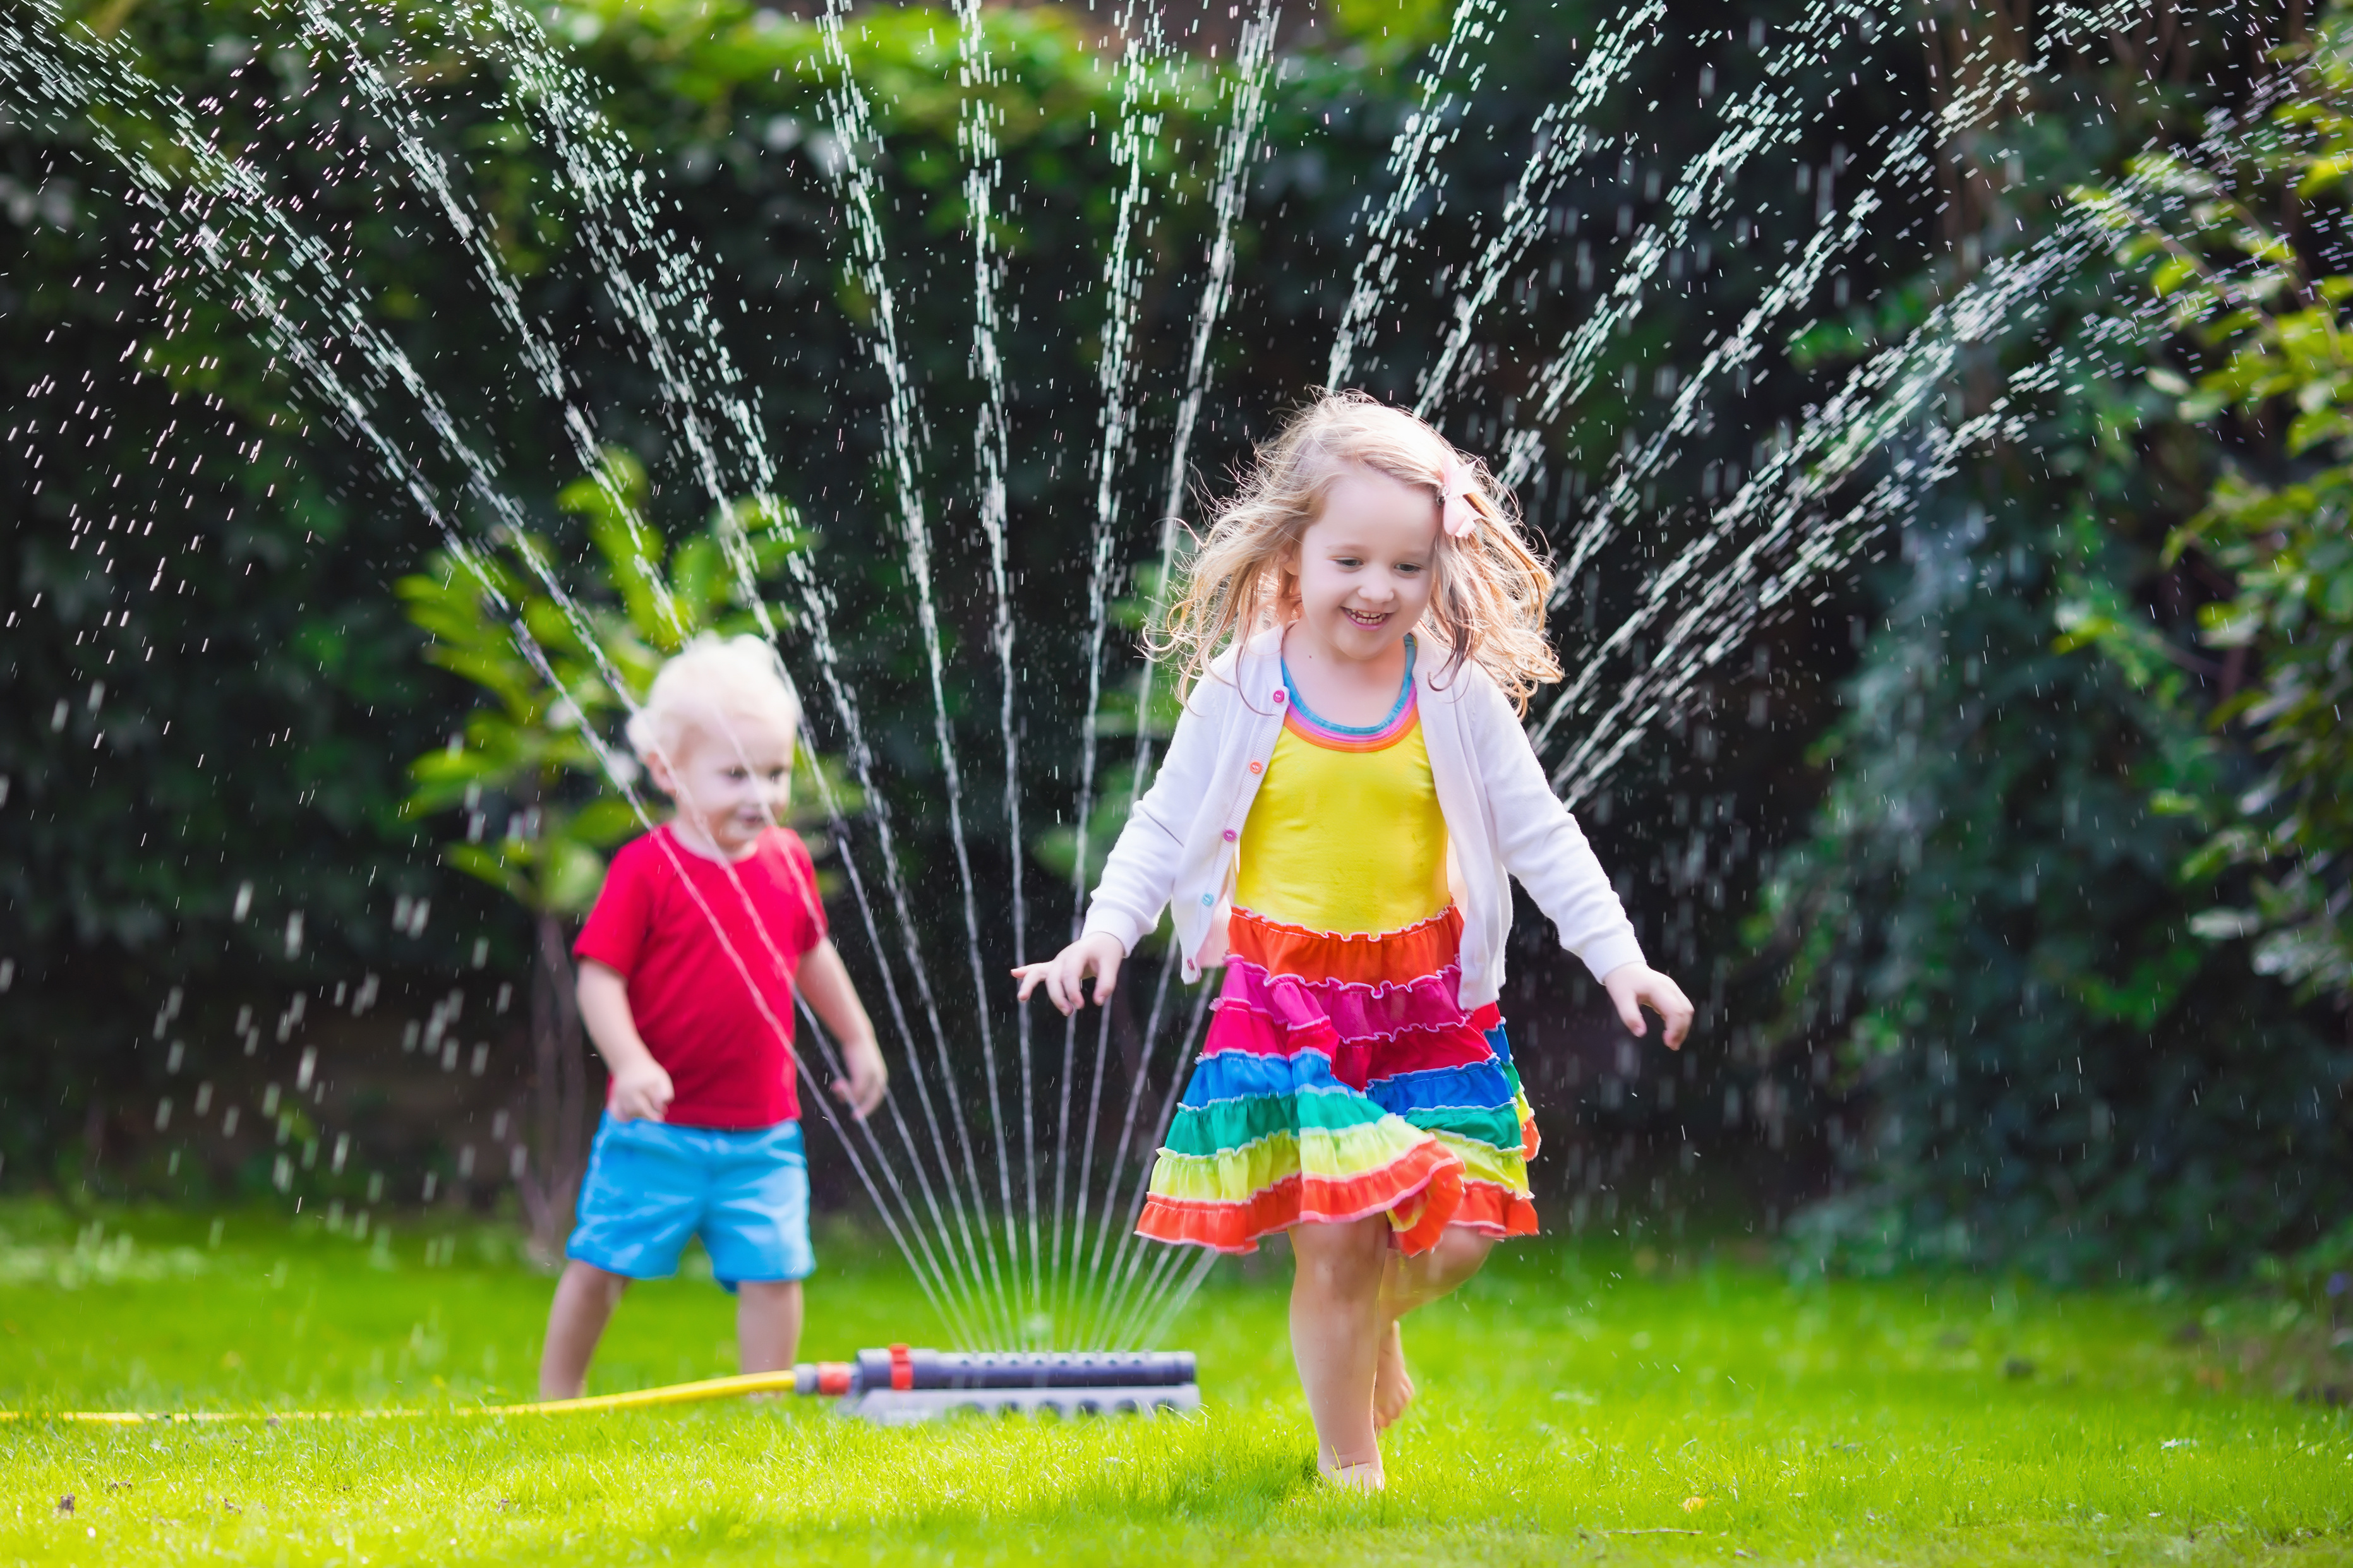 Kids Playing in a Yard